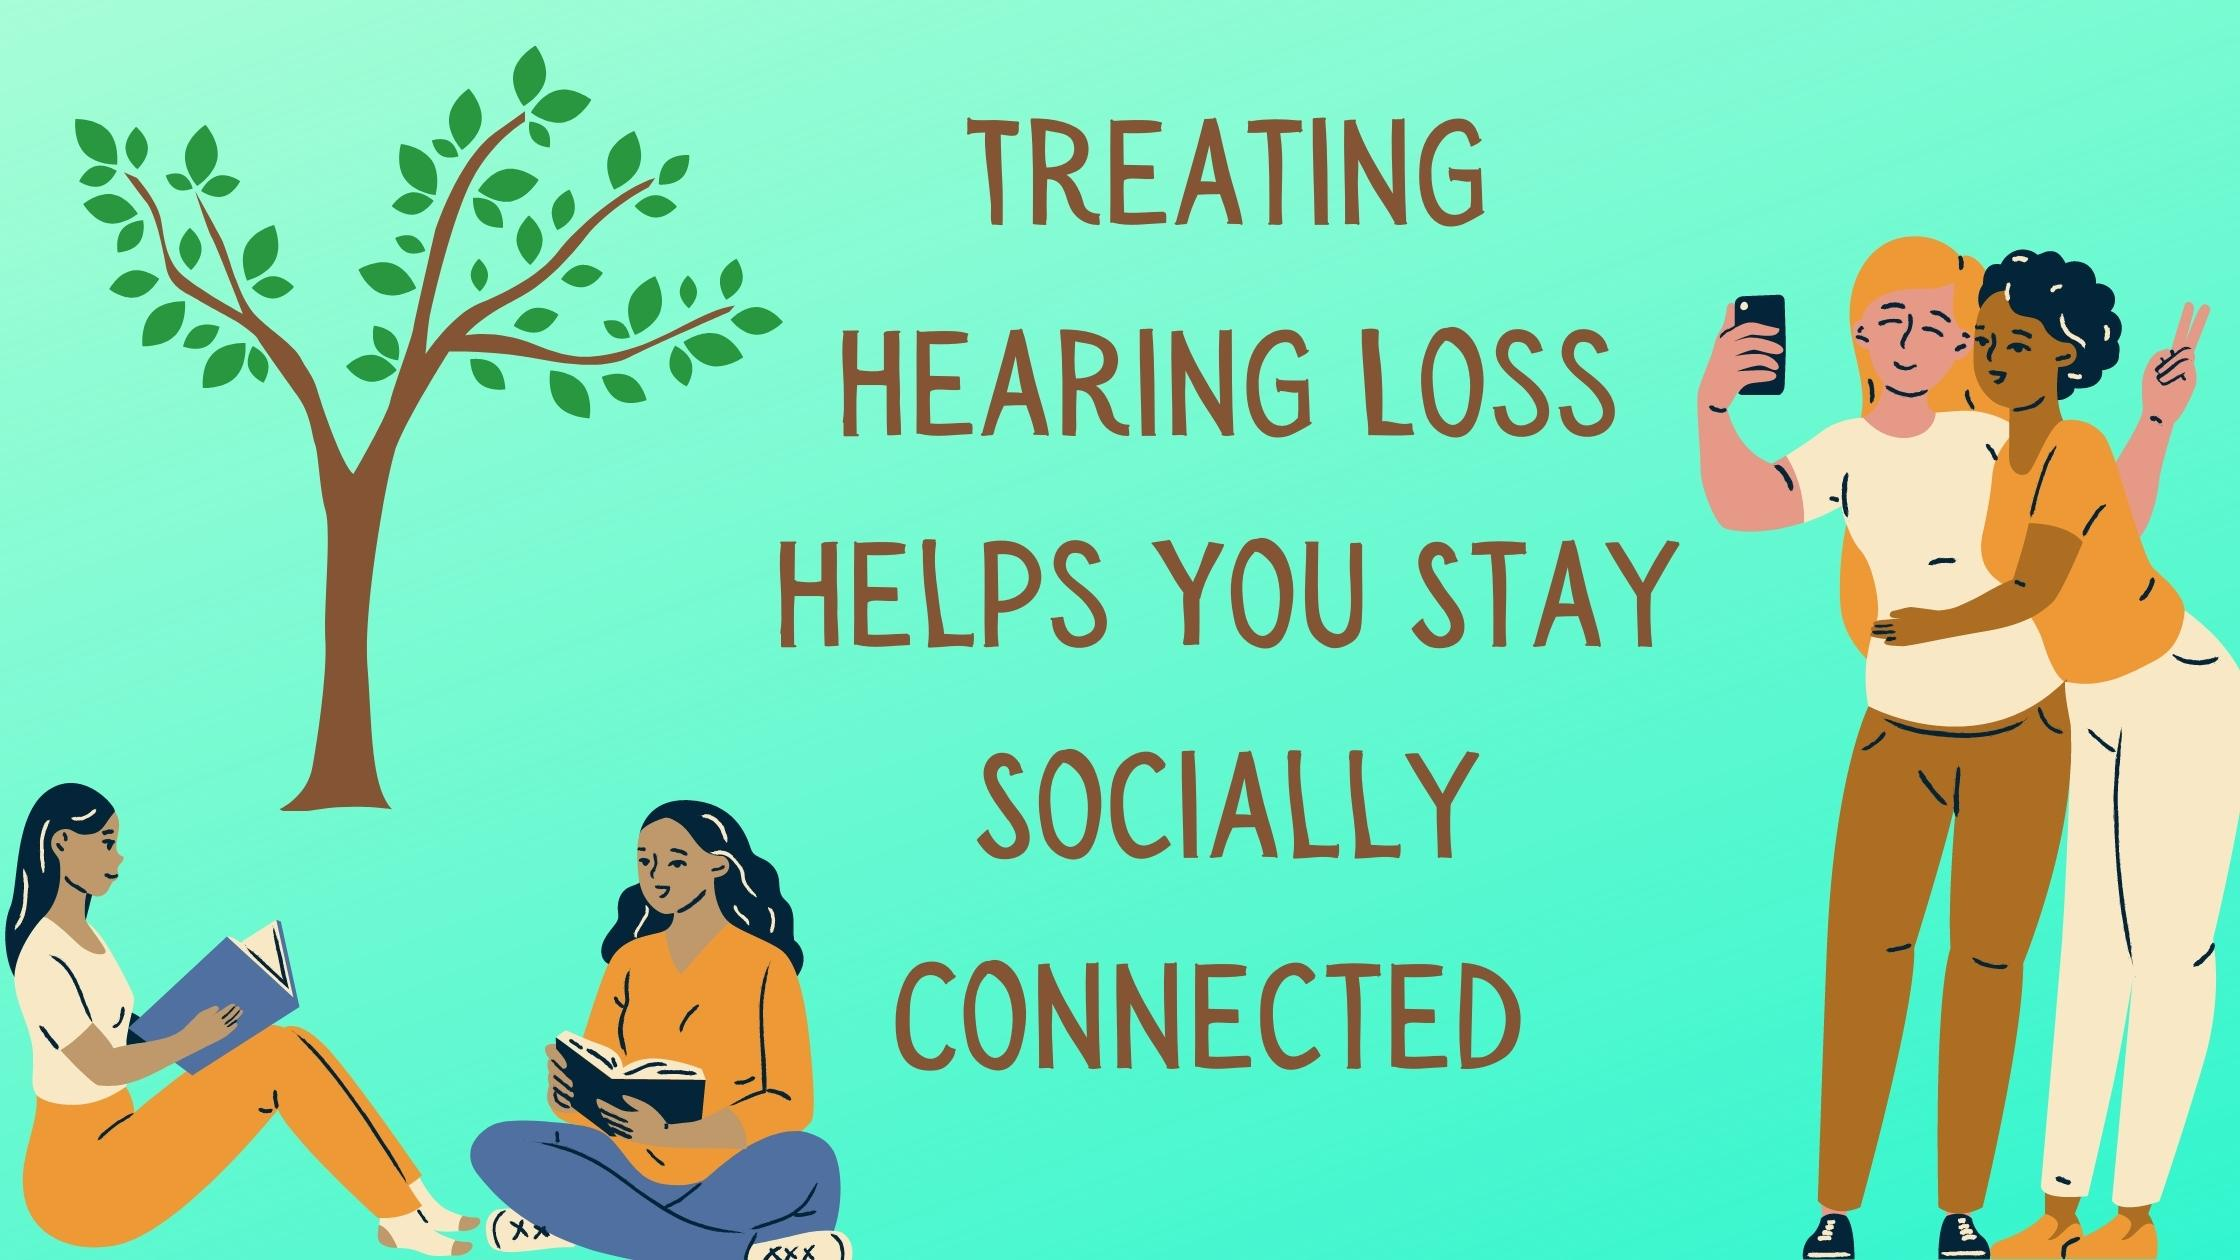 Treating-Hearing-Loss-Helps-You-Stay-Socially-Connected